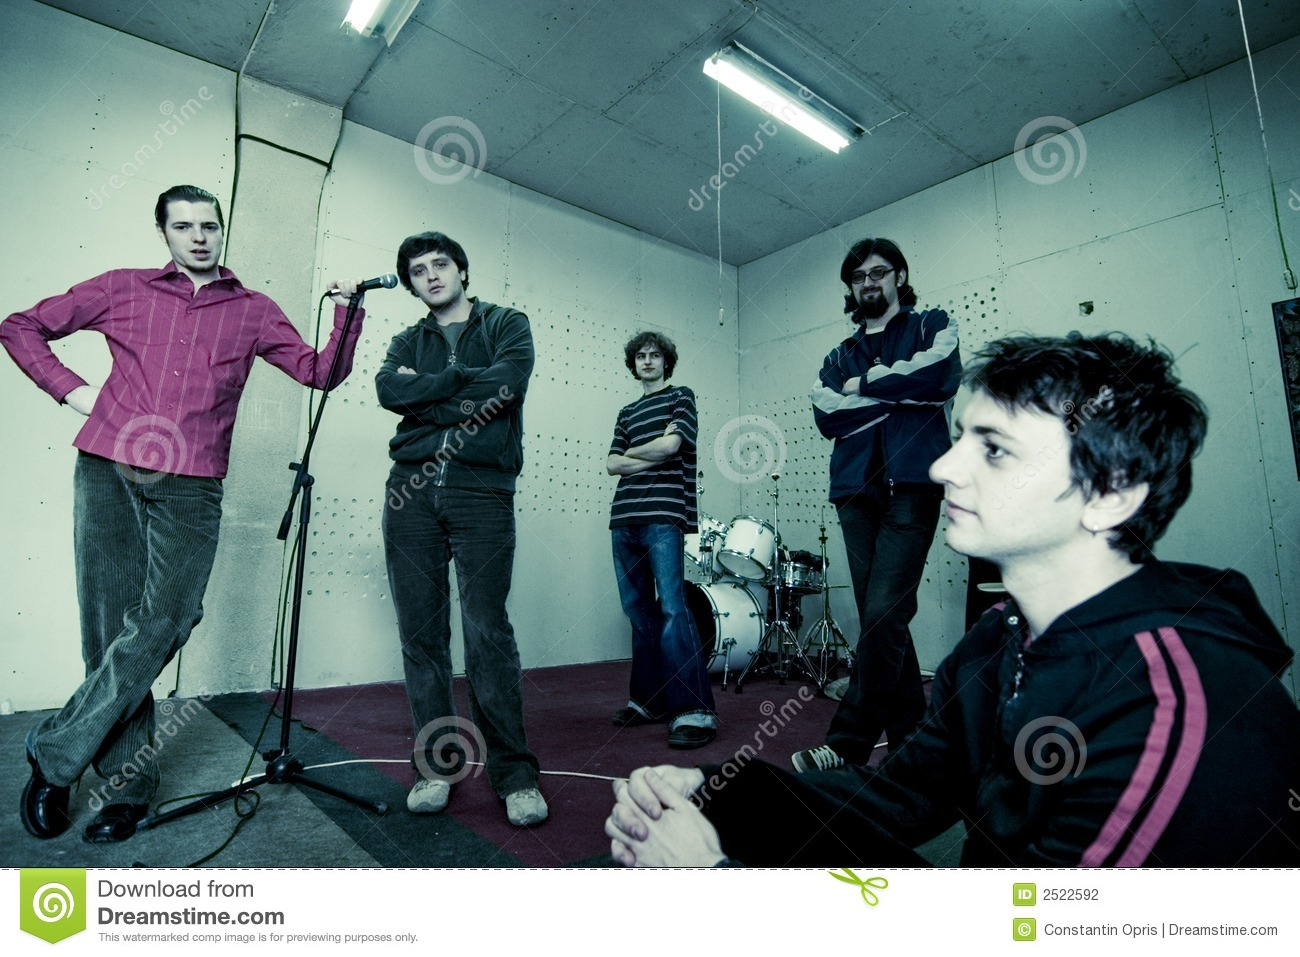 Band Studio Portrait Stock Photography  Image 2522592